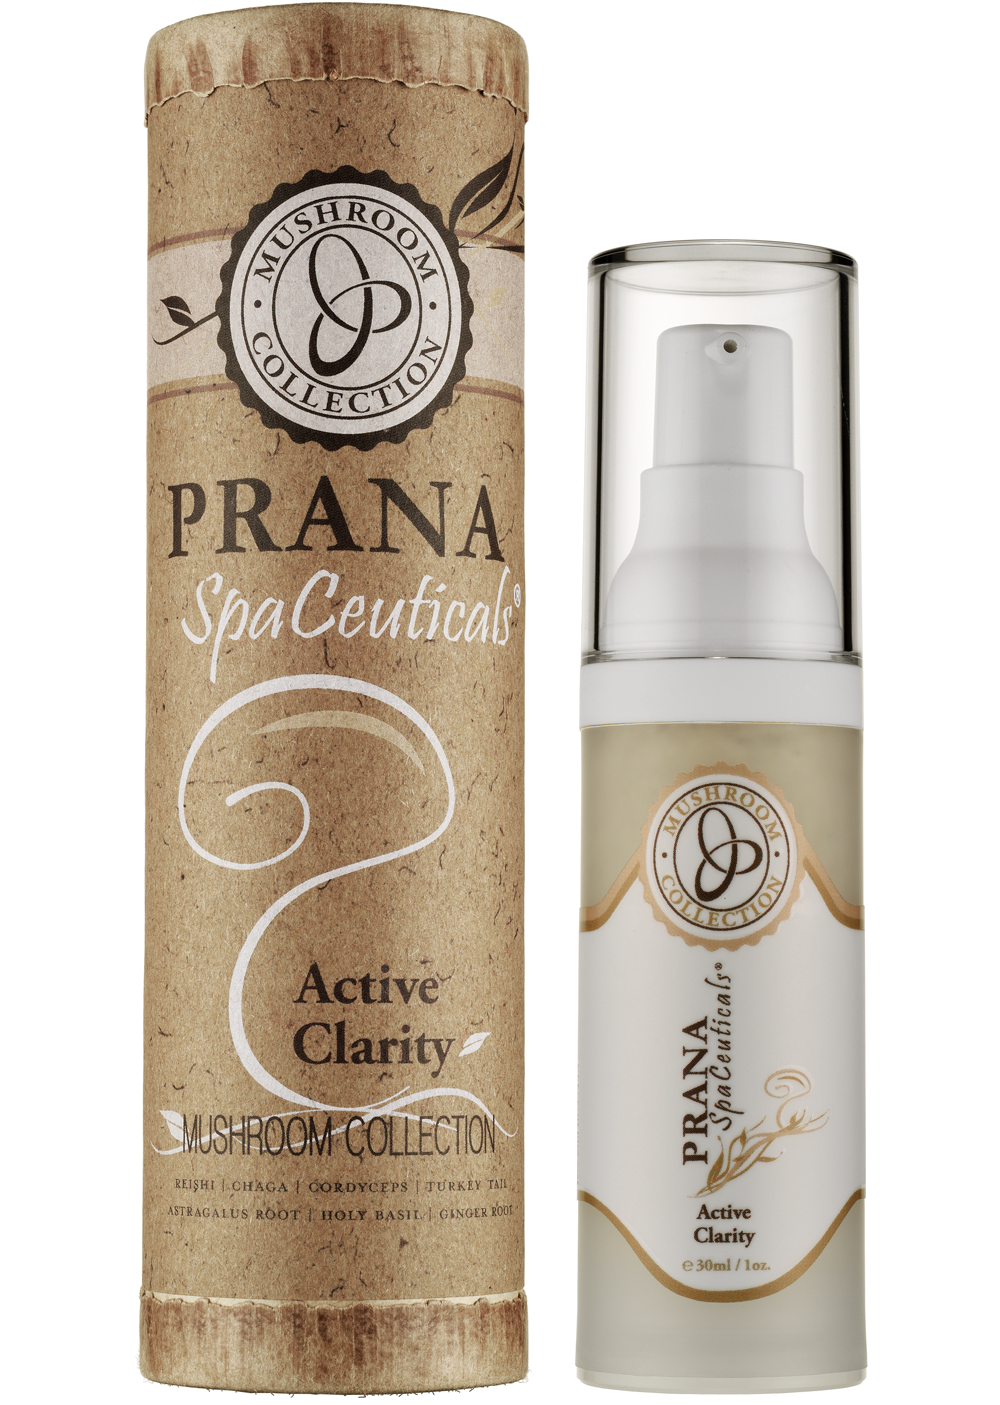 Prana SpaCeuticals Mushroom Collection Active Clarity 1oz European Beauty by B